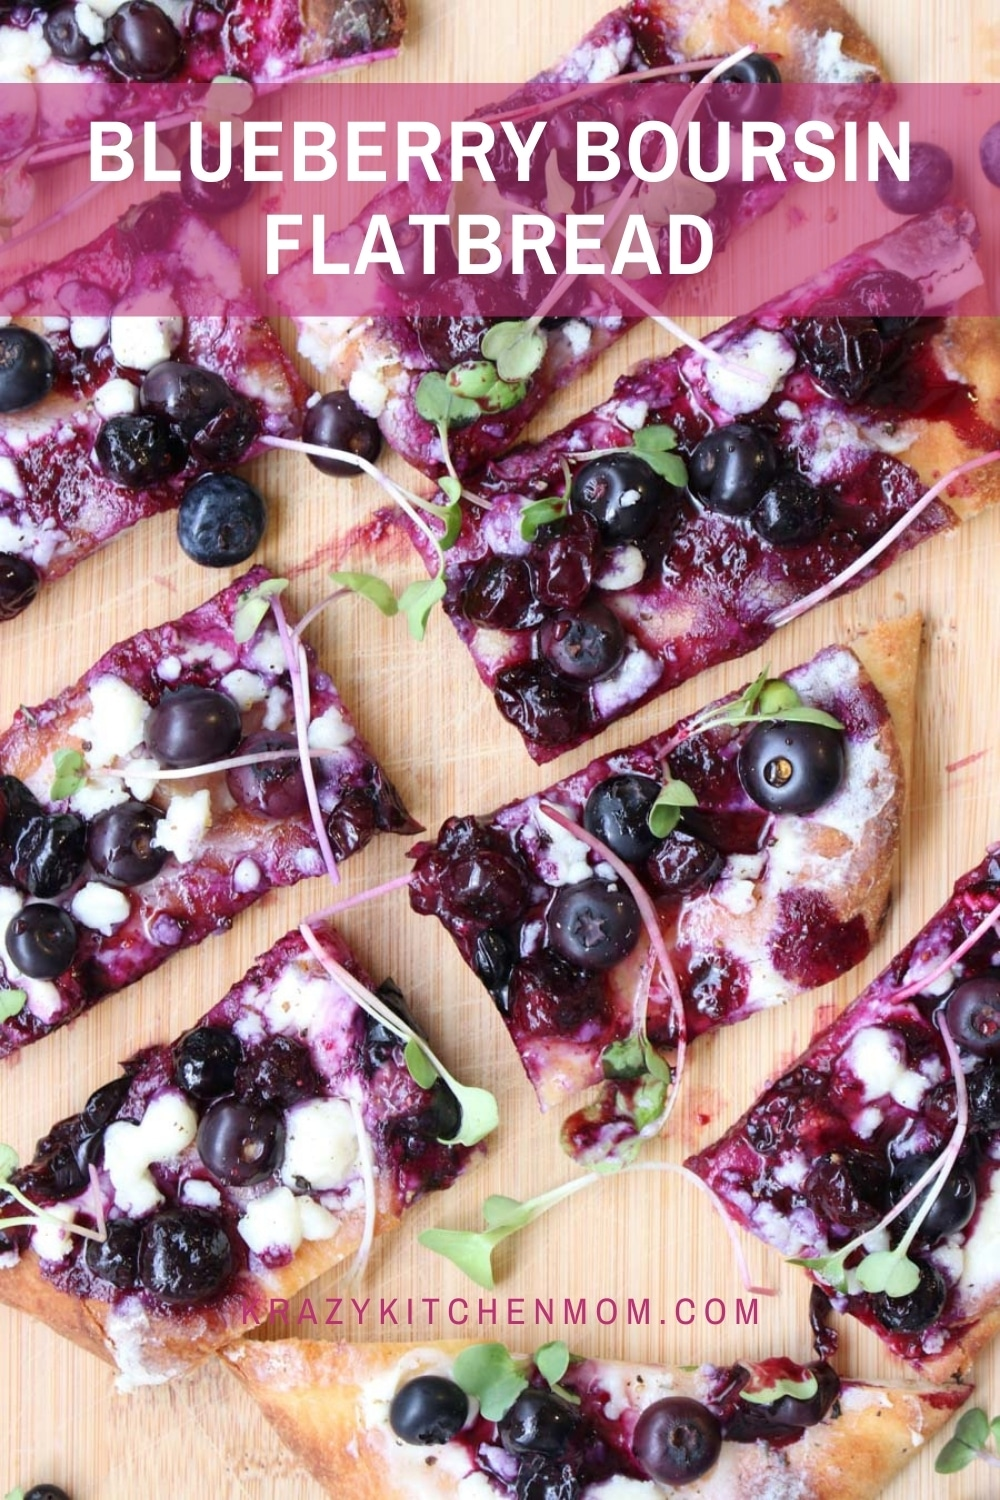 A sweet, tart, and savory flatbread that is ready in minutes using store-bought ingredients. Serve it as an appetizer or dessert. via @krazykitchenmom